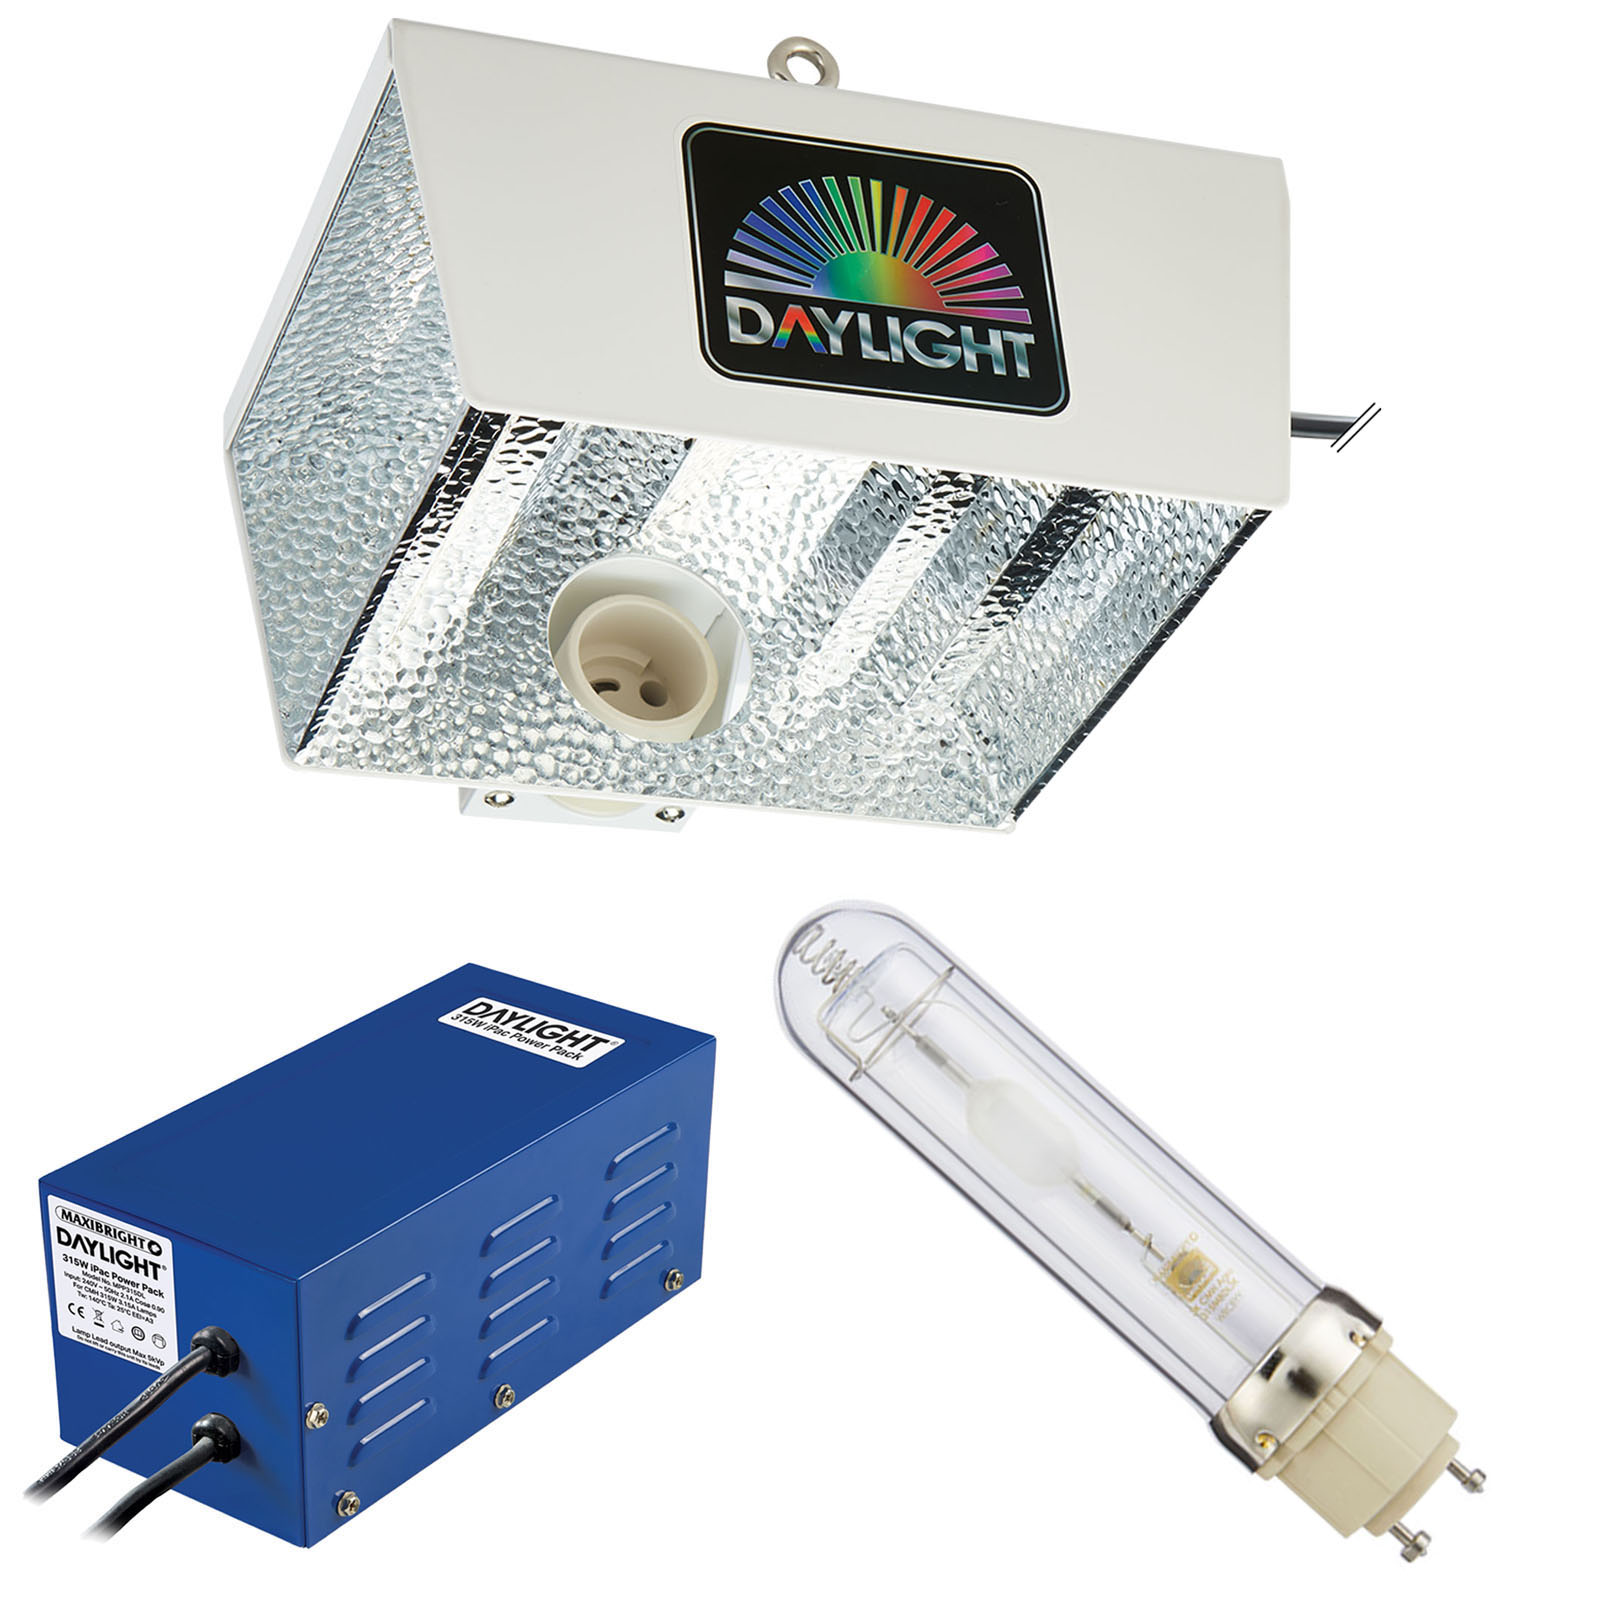 MaxiBright Daylight 315W Compact 4K Lamp Bulb Focus Connect Reflector Hydroponic